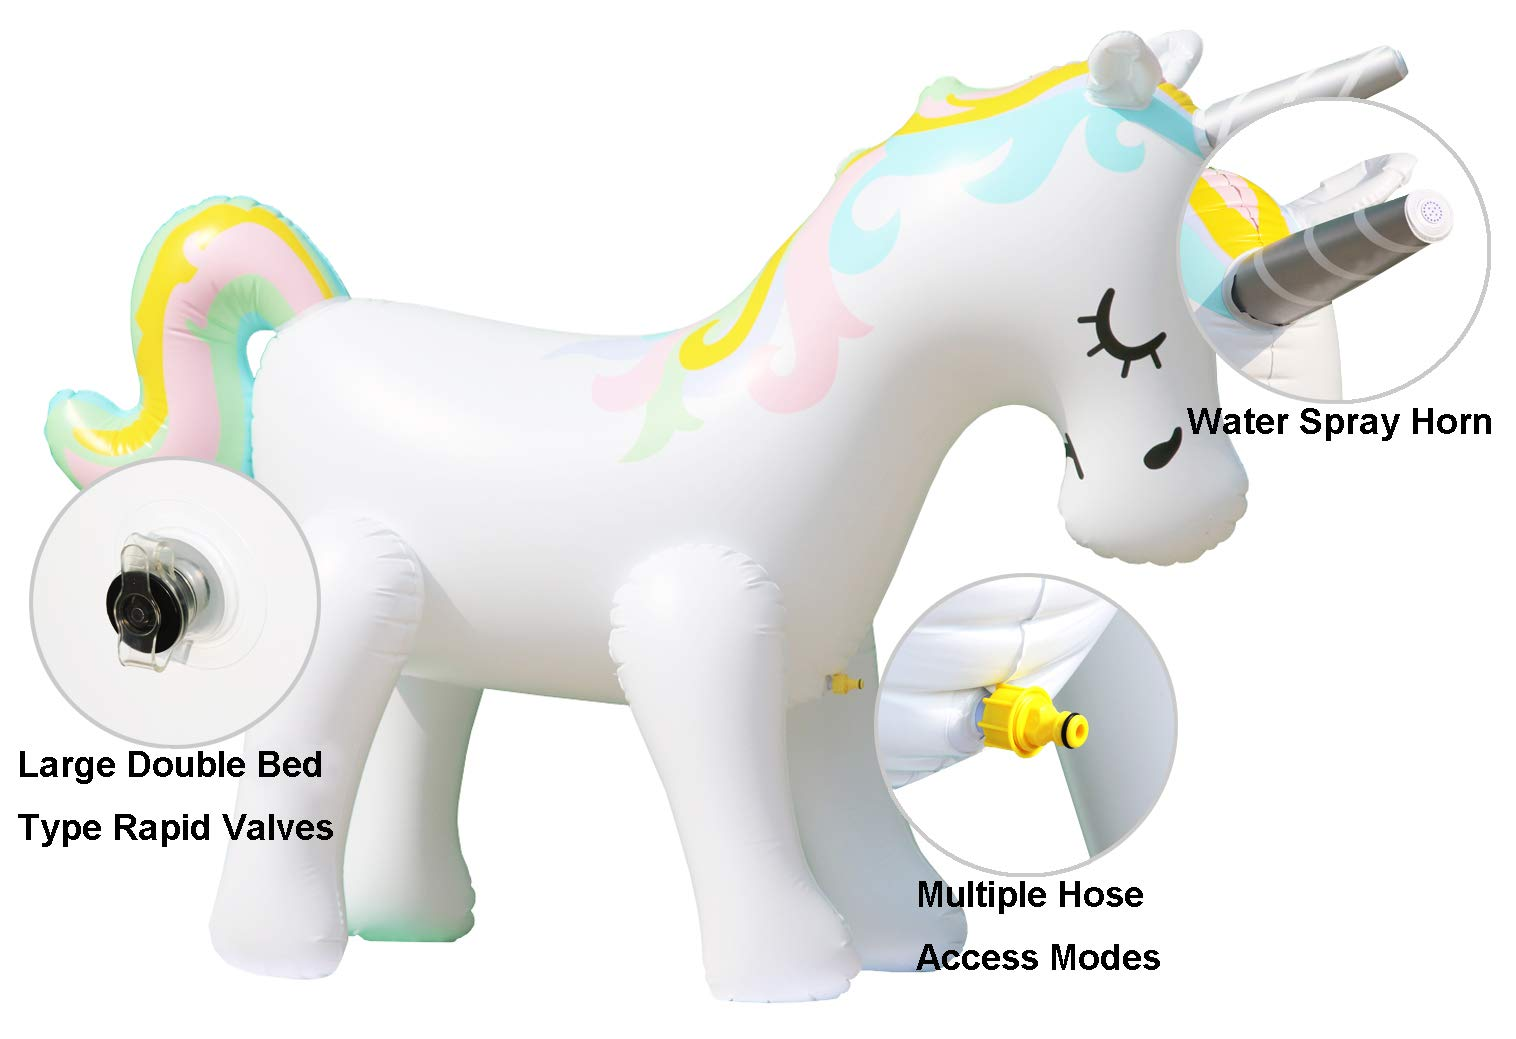 LANGXUN Ginormous Inflatable Unicorn Yard Sprinkler Toy for Kids, Perfect for Unicorn Party Supplies & Outdoor Summer Sprays Water Toys for Toddlers 5